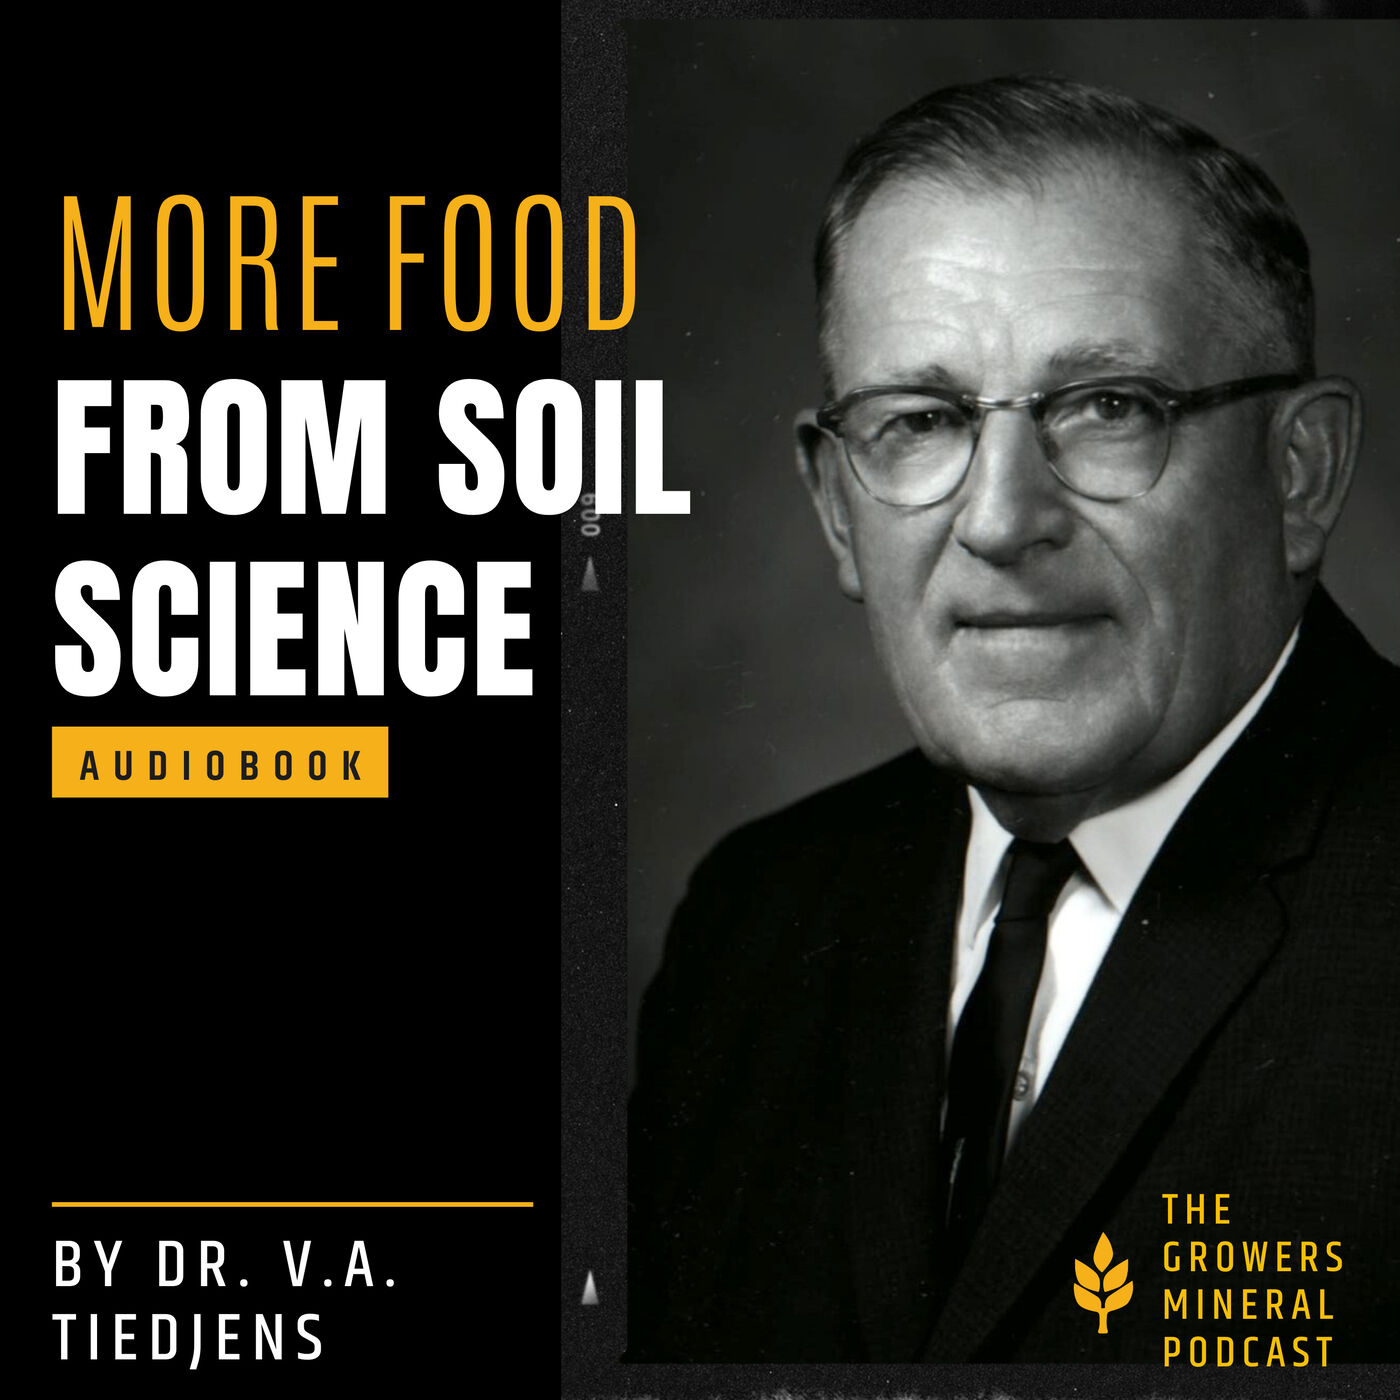 More Food from Soil Science Audiobook Ch. 10 - Fertilizer Solutions Have Many Advantages